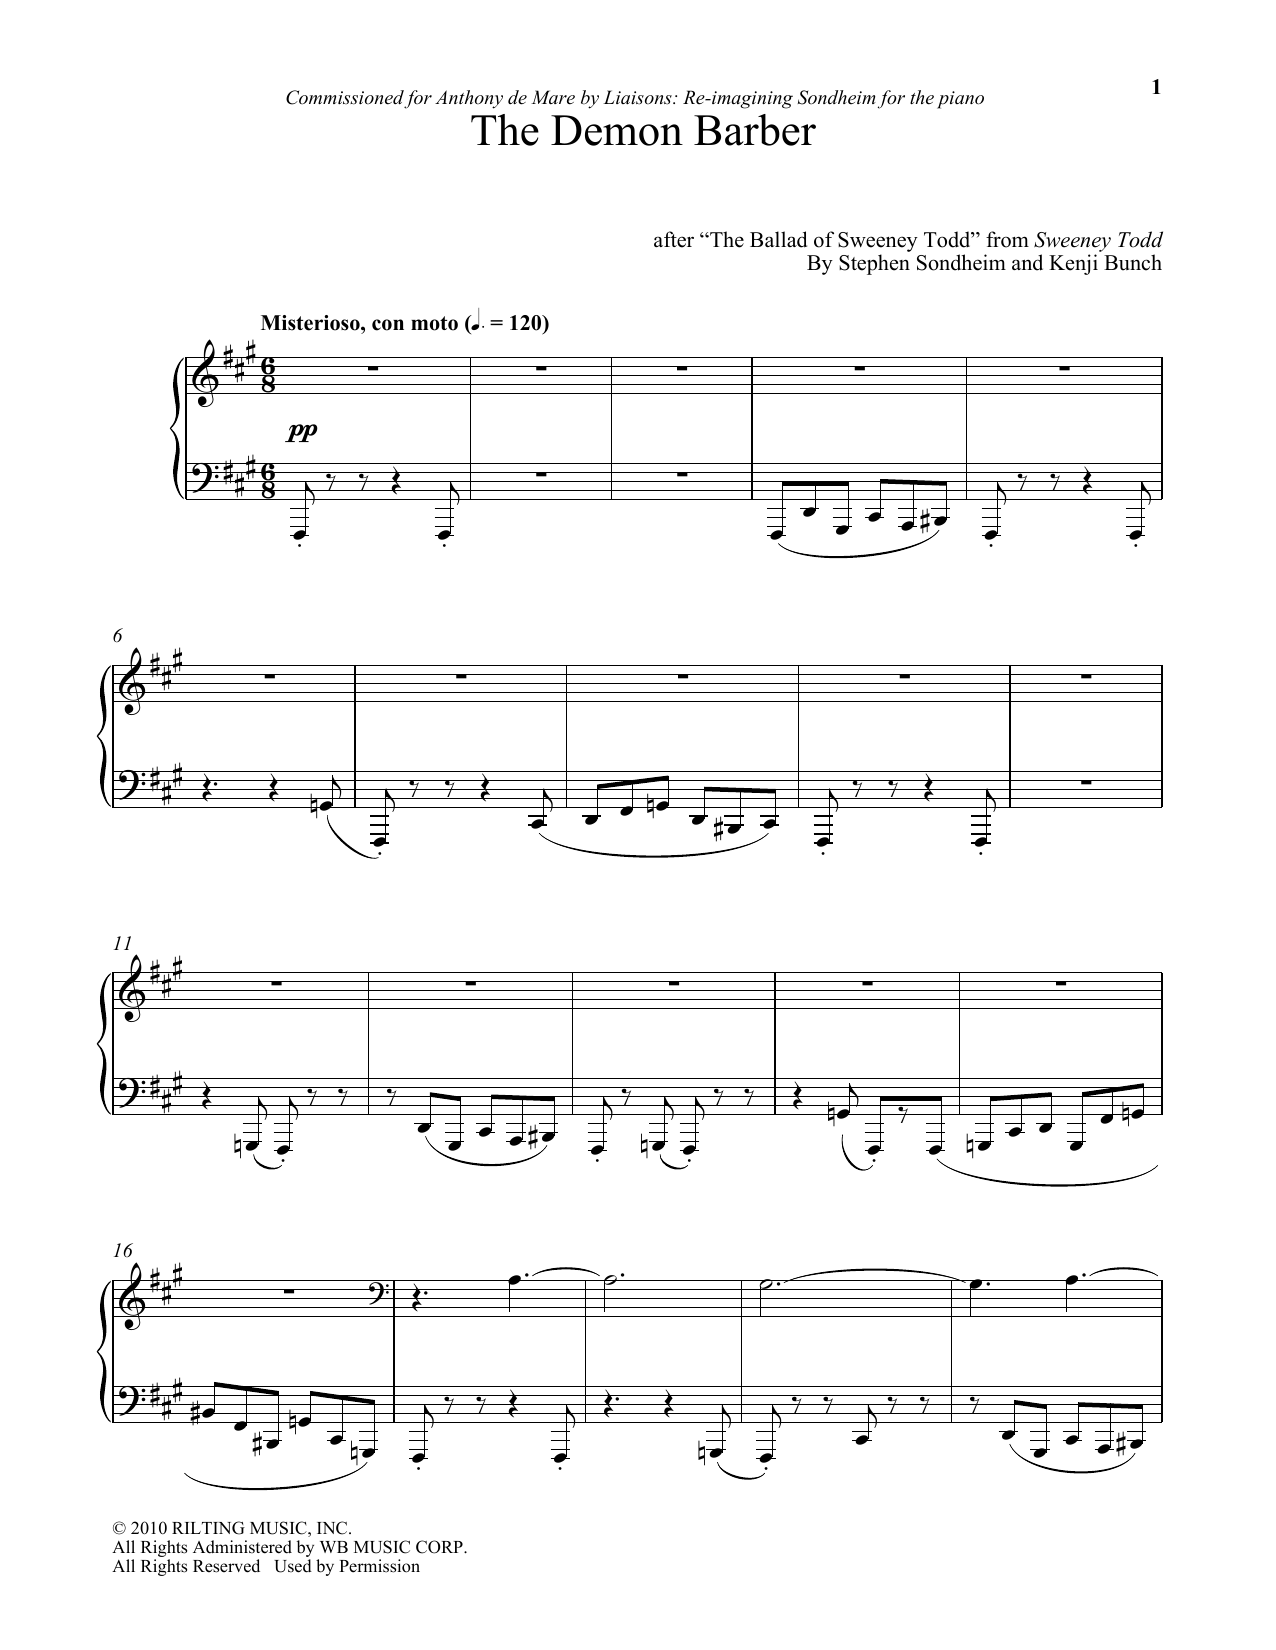 Download Stephen Sondheim 'The Demon Barber (arr. Kenji Bunch)' Digital Sheet Music Notes & Chords and start playing in minutes